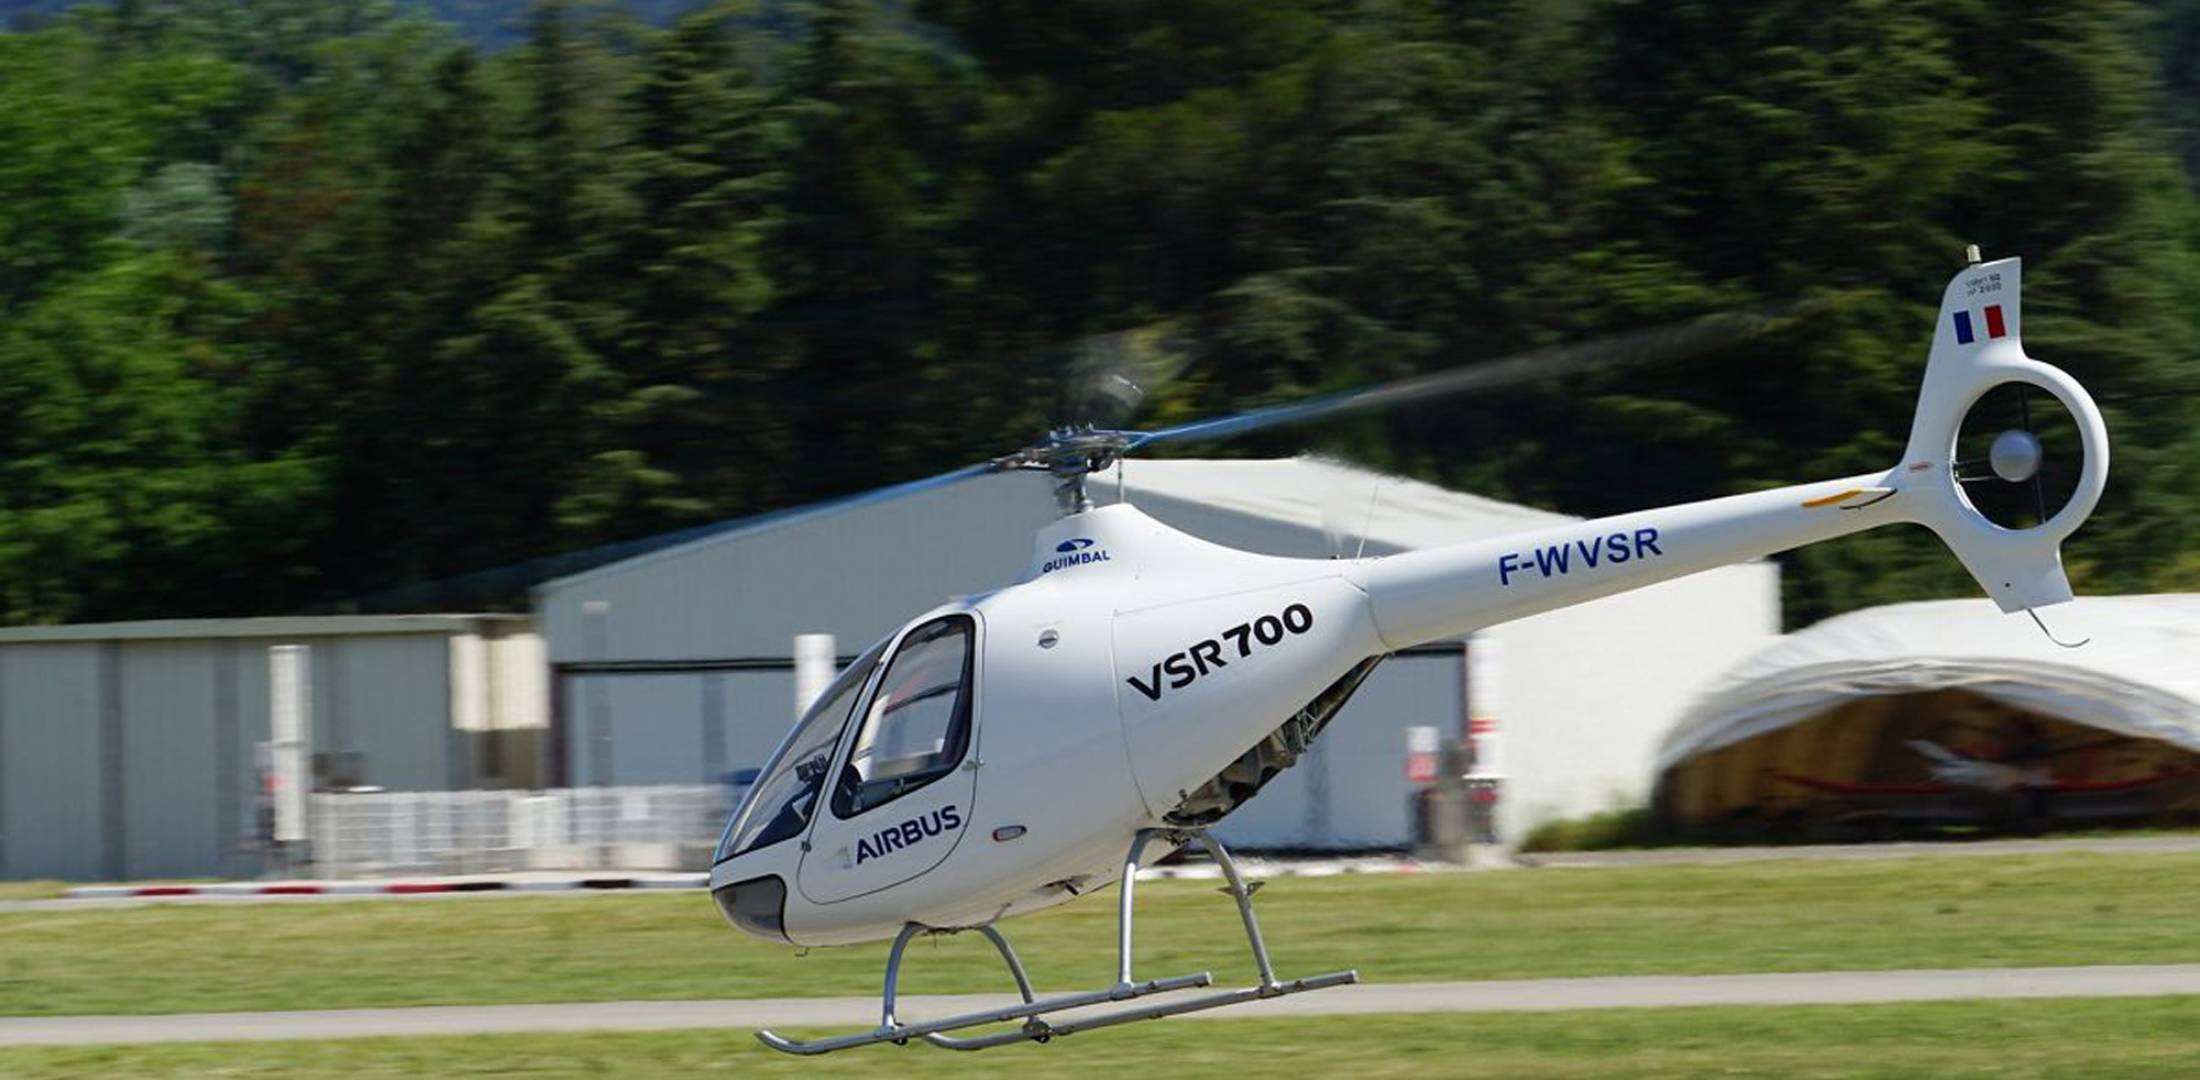 Airbus Helicopters VSR700